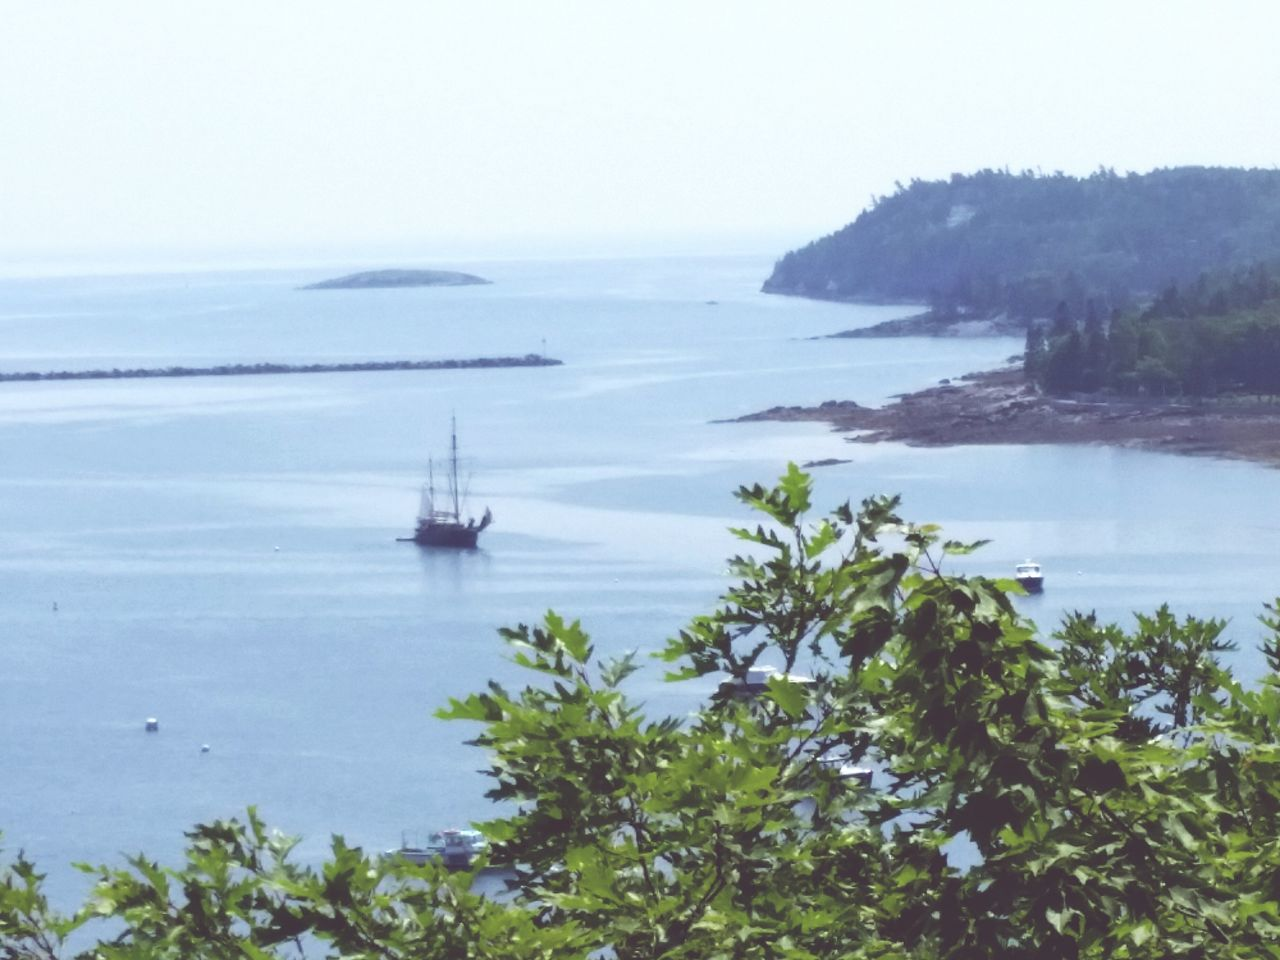 Harbour Life Coastal Maine Pirateship  Sail Away, Sail Away The Traveler - 2015 EyeEm Awards View From Above